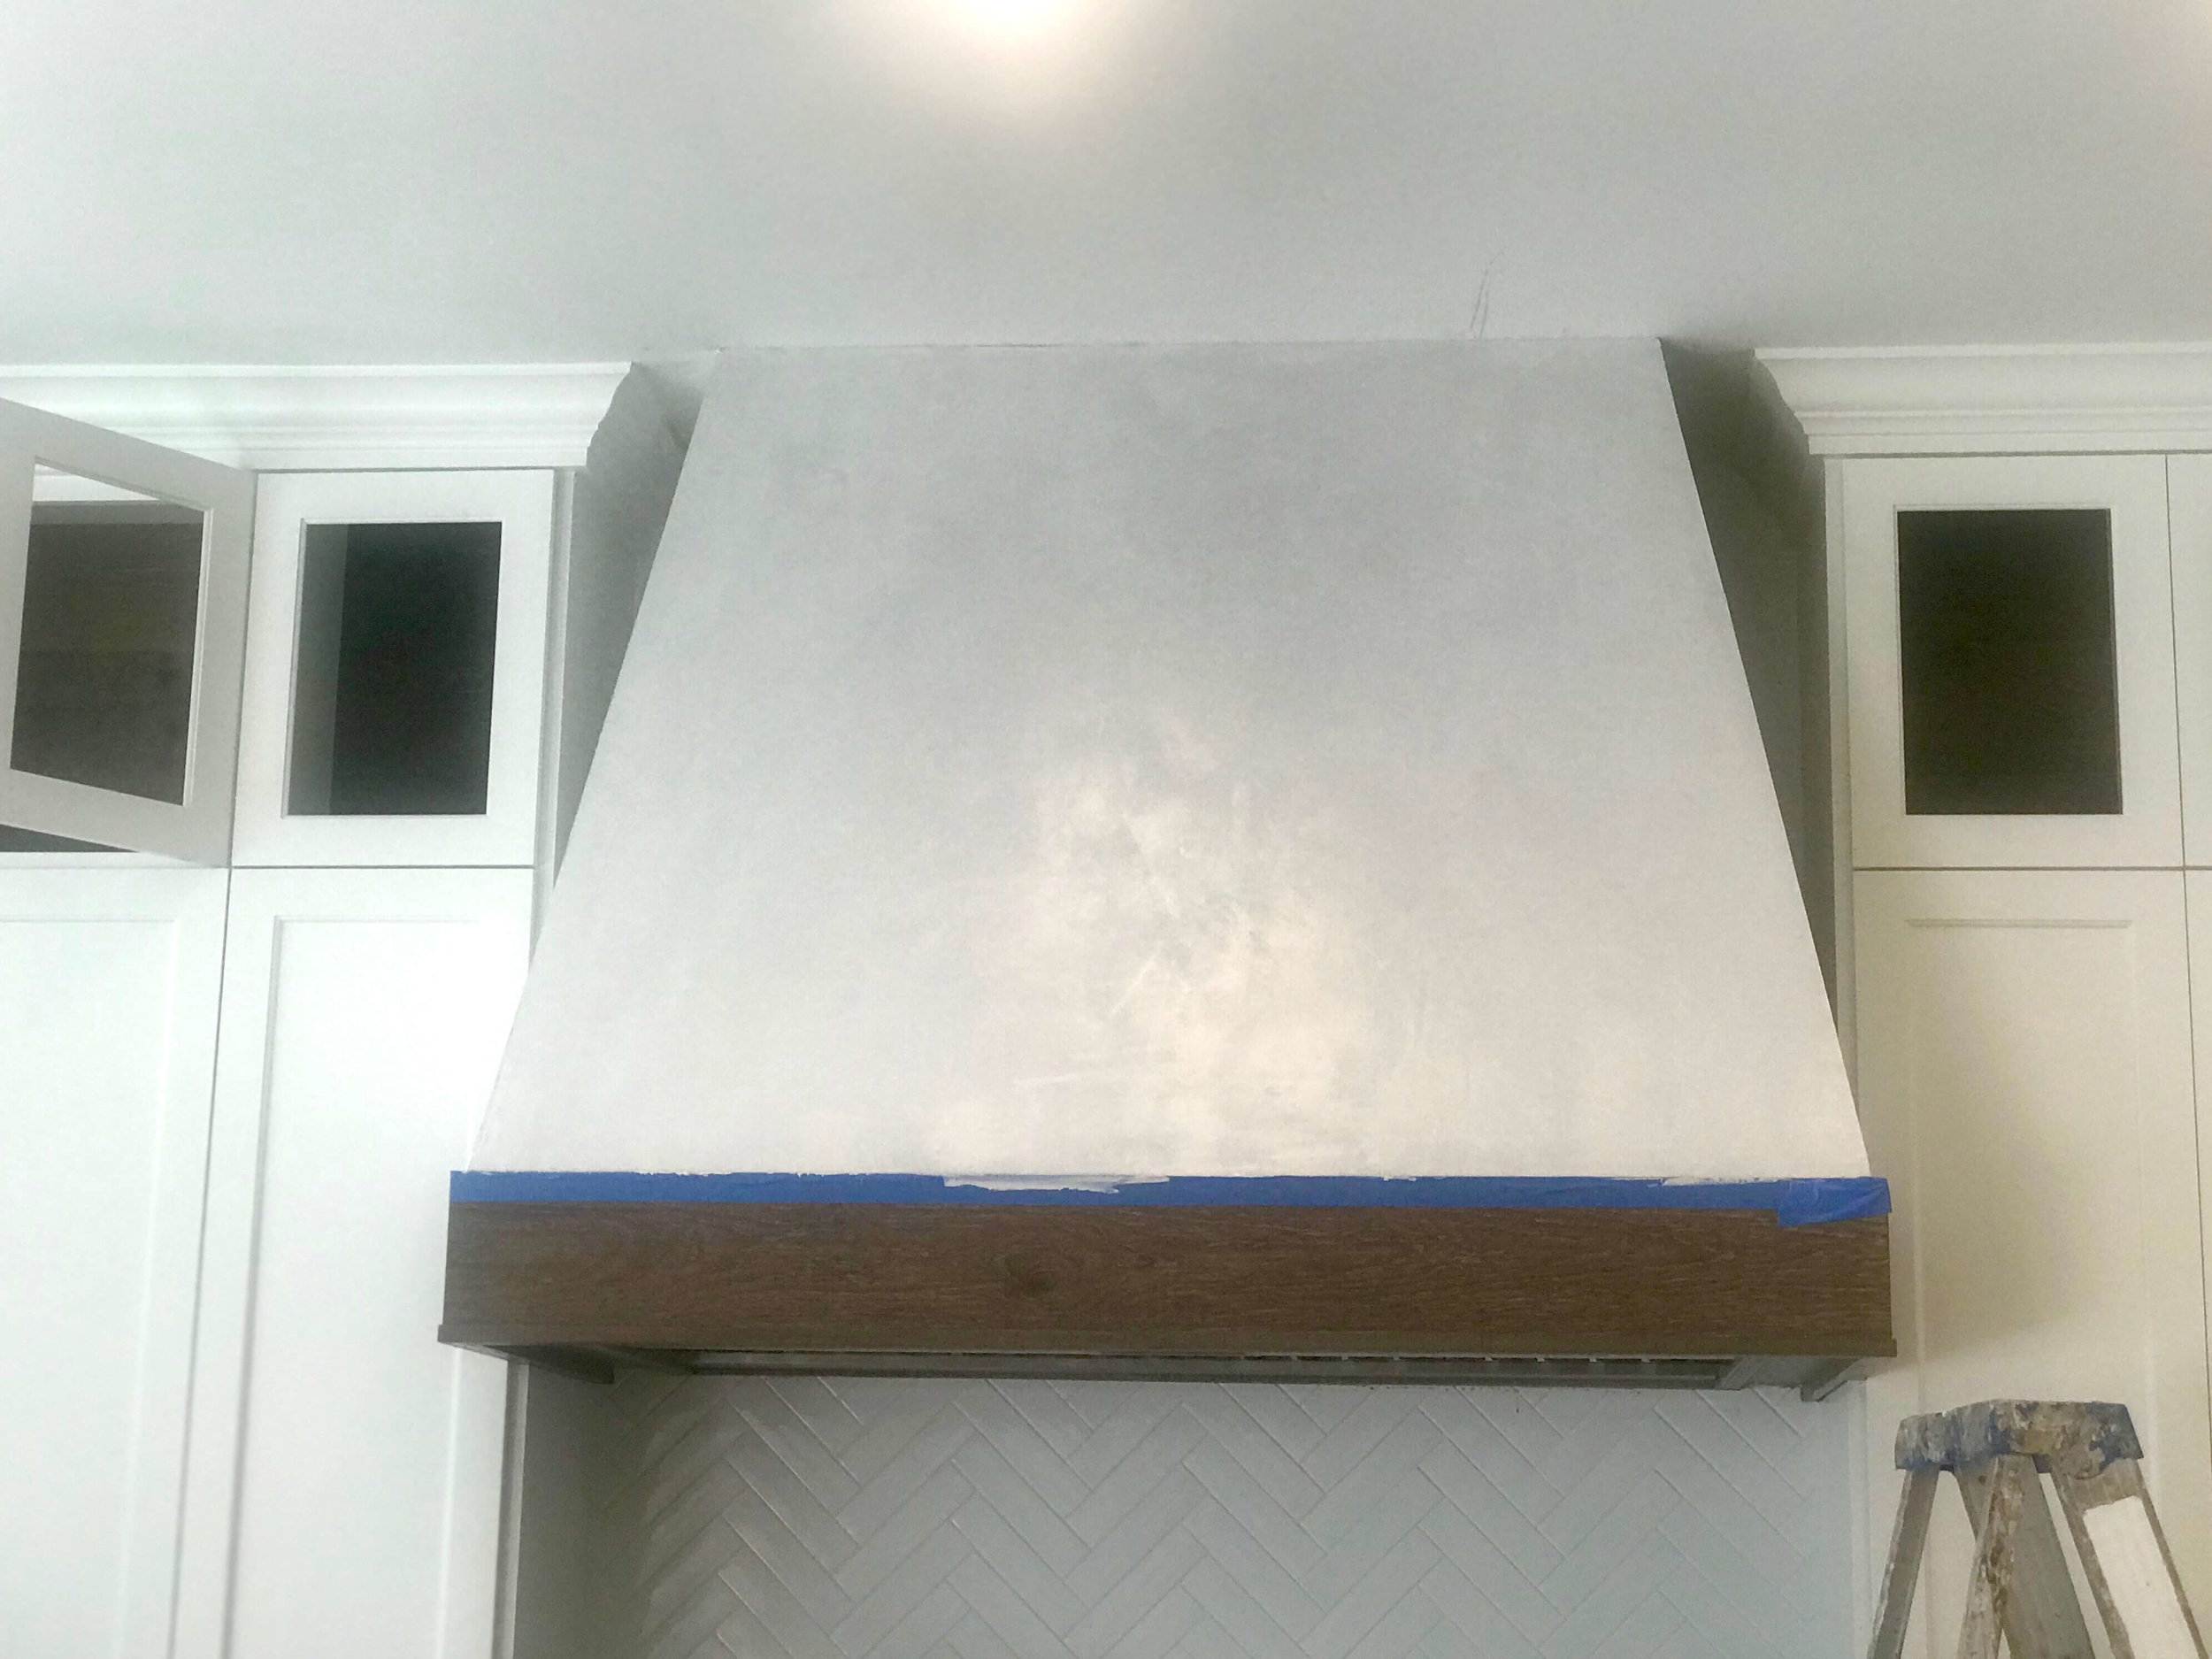 Here's the beautiful plaster finish going on the hood. It's a subtle tone-on-tone effect, designed to reflect the same look as the quartzite countertops and the flooring. :-) Looking good! Carla Aston, Designer #kitchenhood